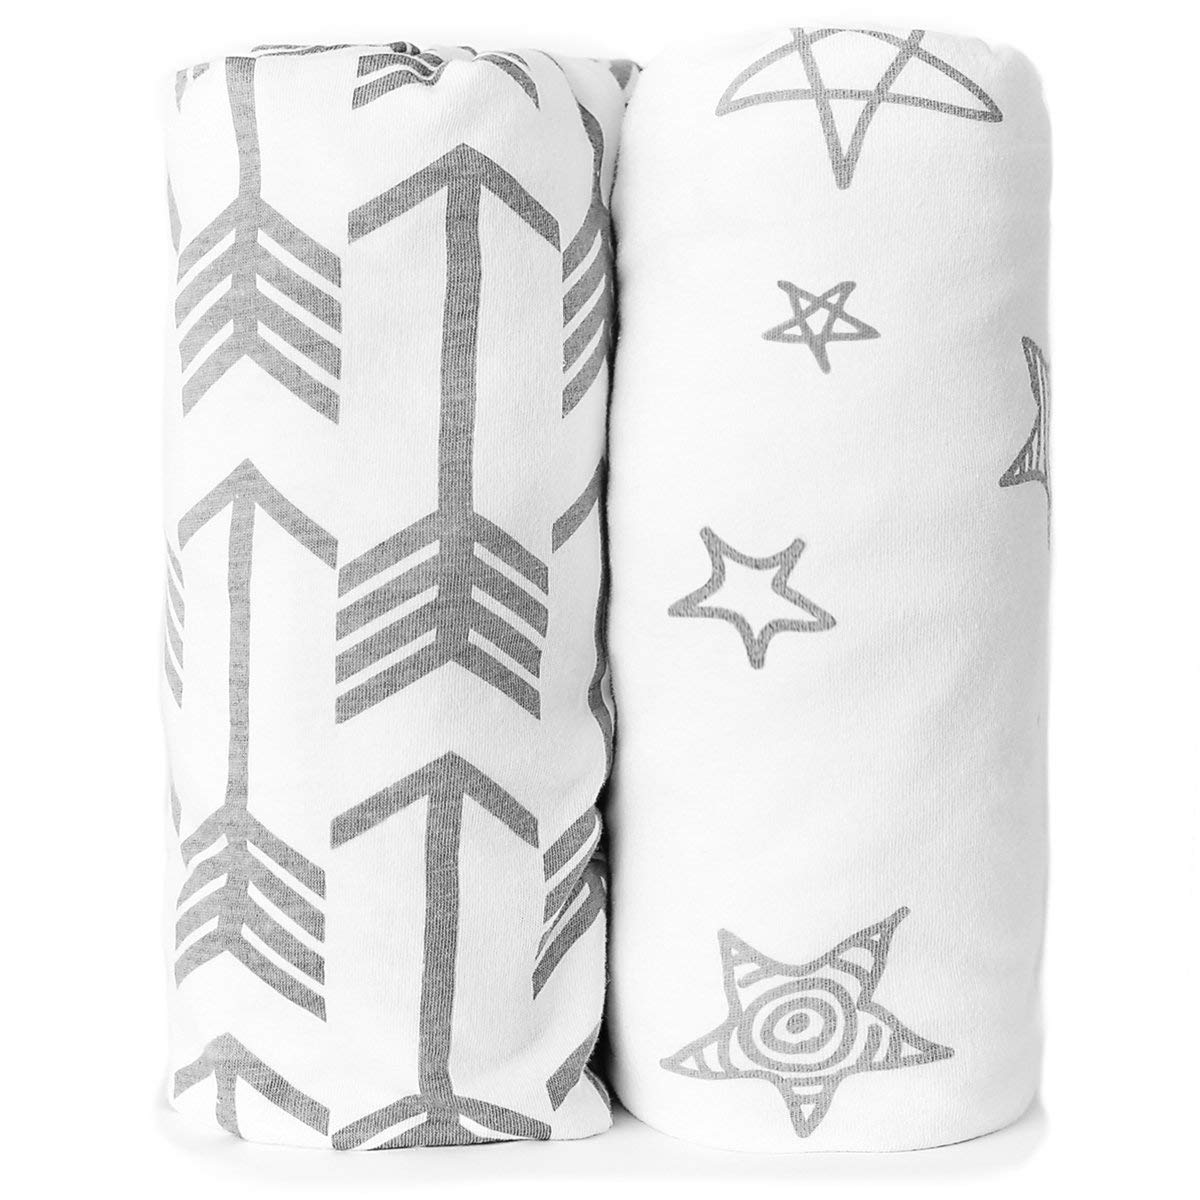 Bassinet Sheets - Fitted, Premium Jersey Cotton - Baby Bedside Sleeper Cover - Universal Sheet Set for Rectangle, Oval, or Hourglass Bassinet Mattress - White 2 Pack for a Girl or Boy - Arrow Stars Kids N' Such BASS-ARROWS-STARS